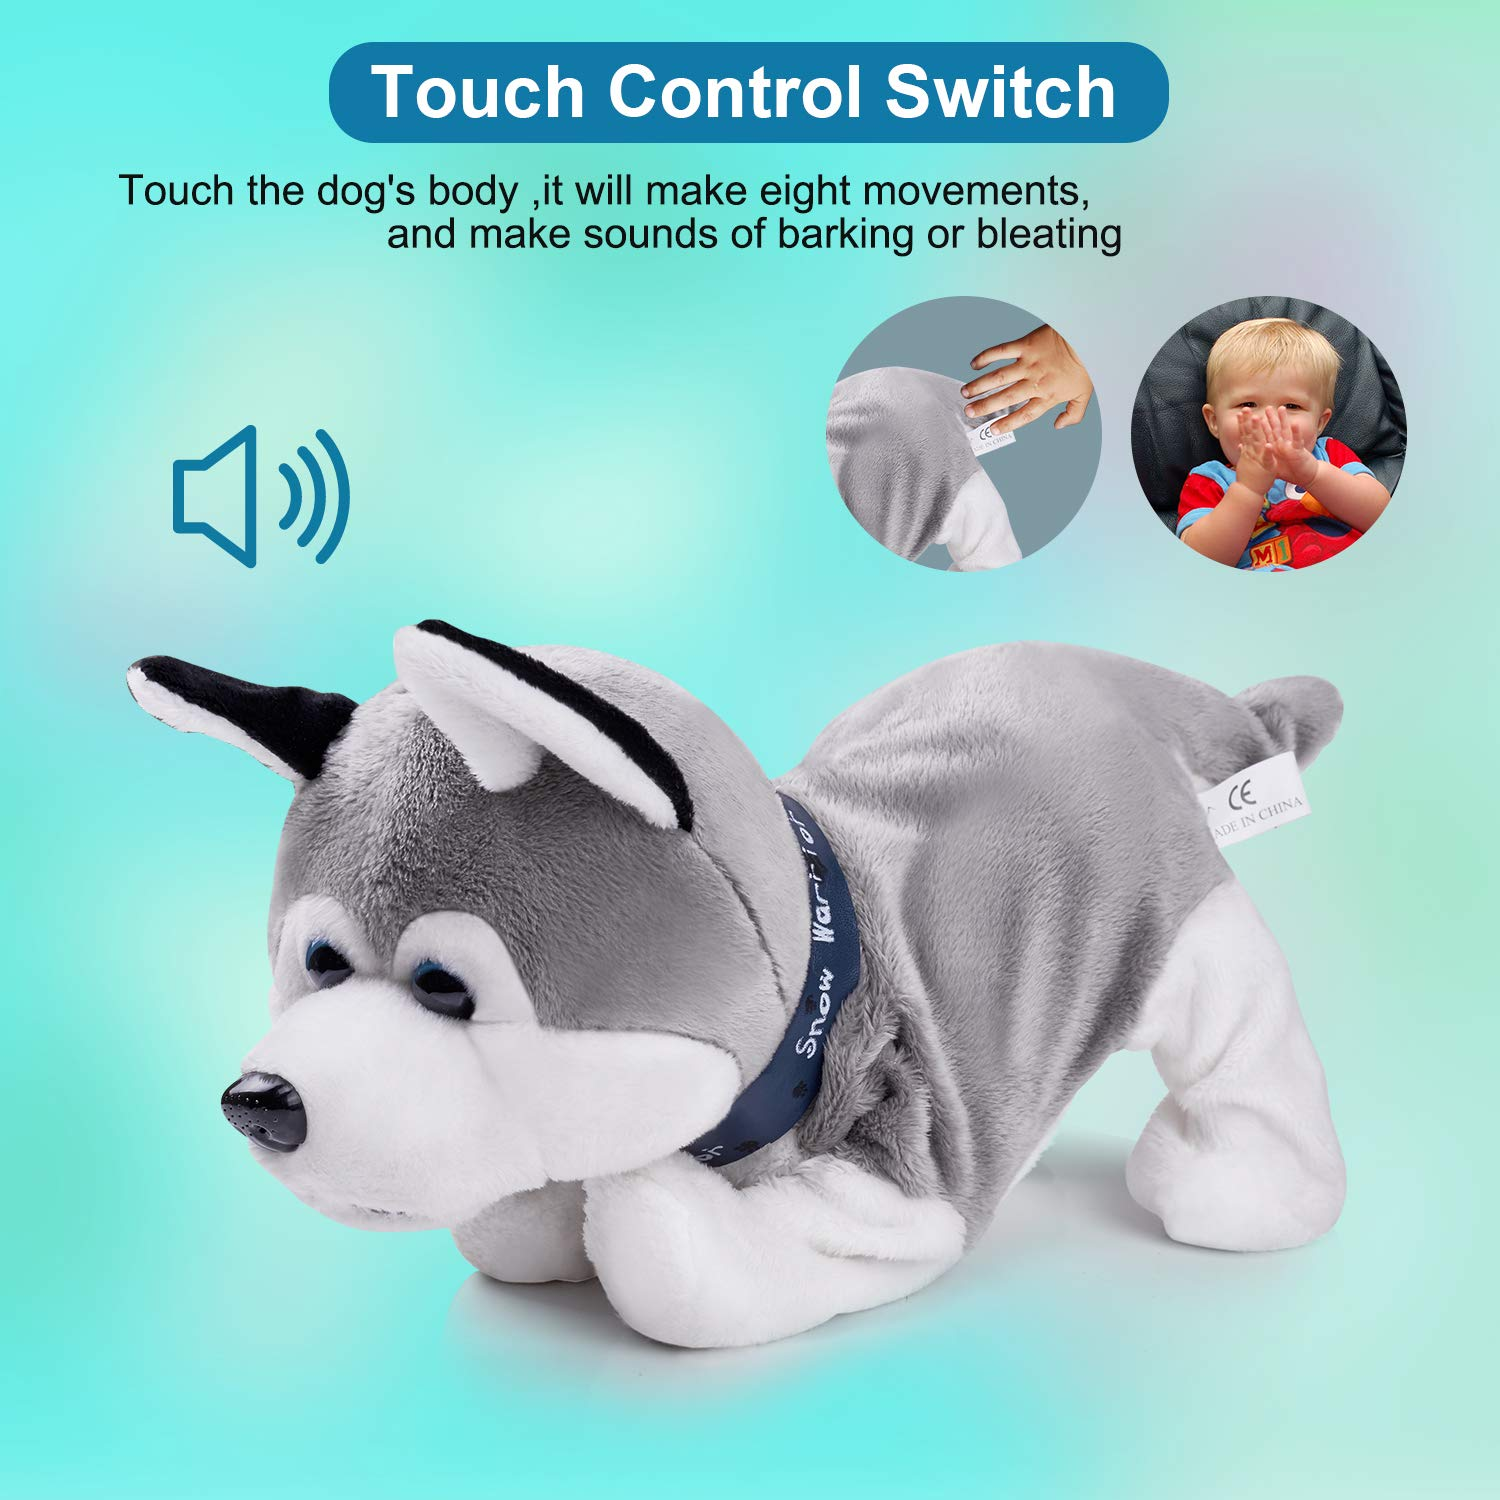 Interactive Puppy Plush Animated Pet Electronic Dog Cute Robot Dog Baby Toys Touch Control Plush Husky Stuffed Animal Dog Toy Toddler kids Girl Toys Tumbling, Clapping hands, Bowing Length 12'' by Marsjoy (Image #3)